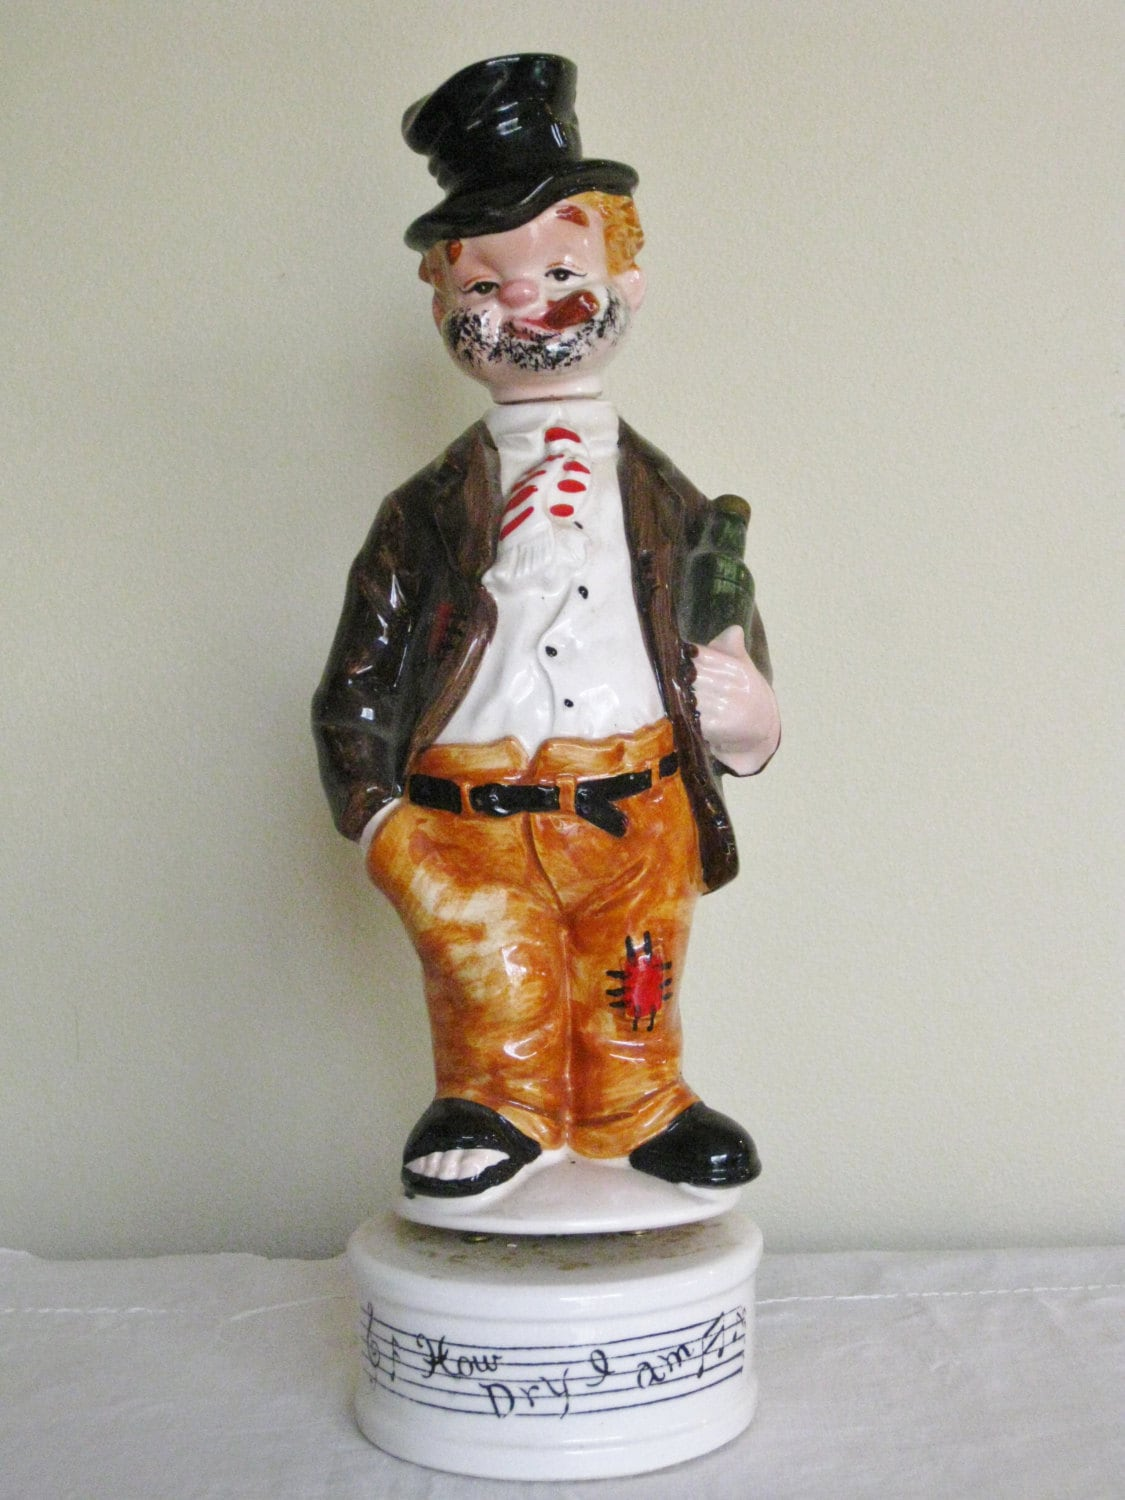 1950s Figural Liquor Decanter Vintage Ceramic By